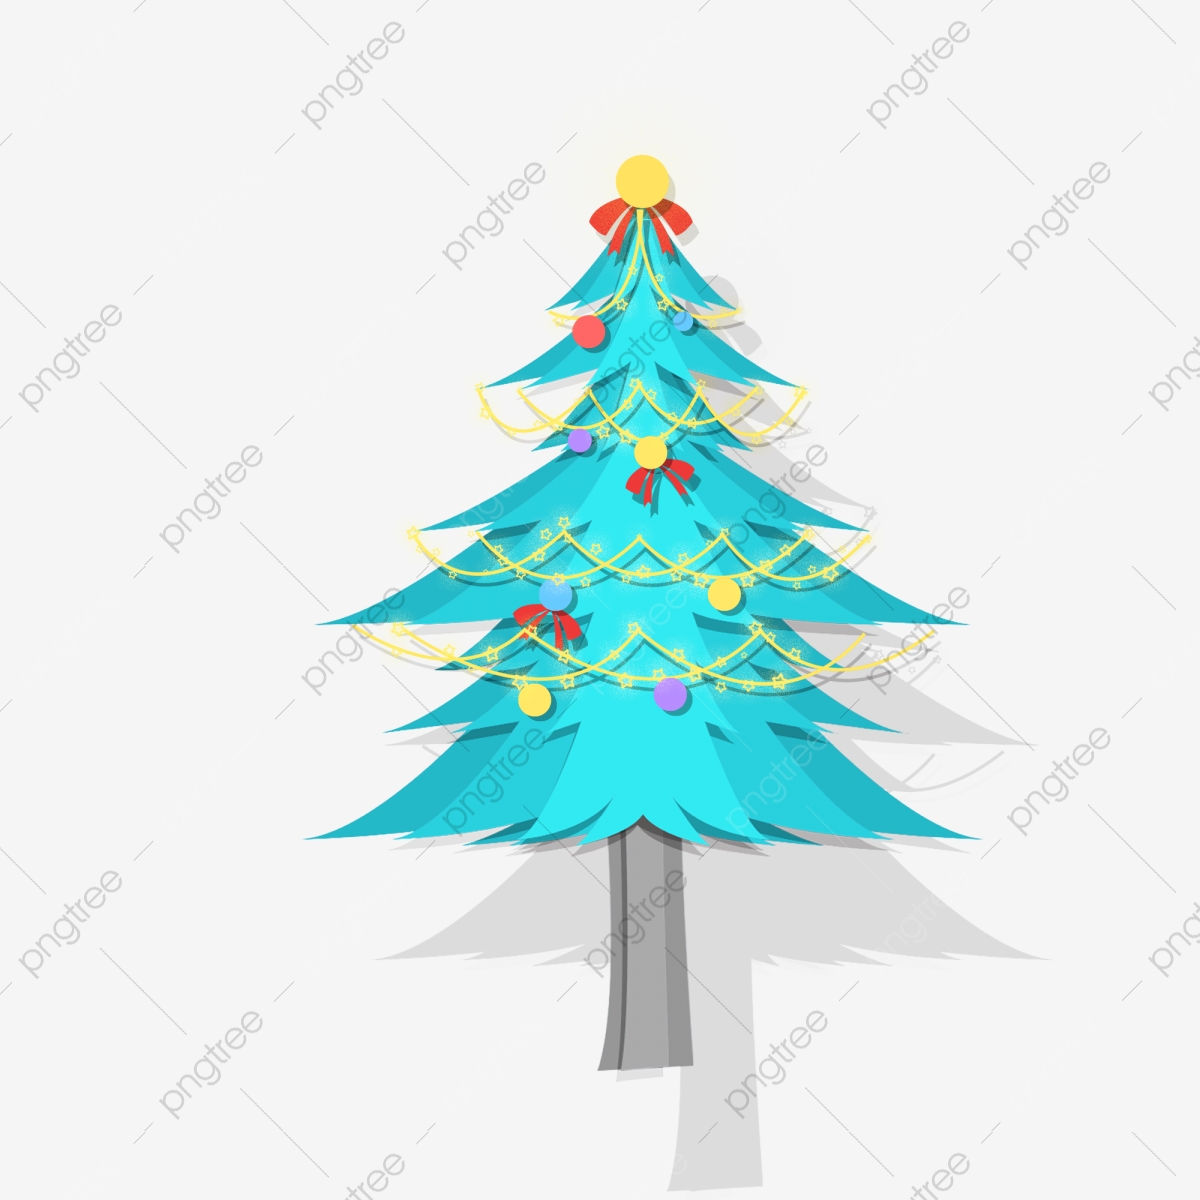 Blue Christmas Tree Decoration Element Design Blue Cartoon Simple Png Transparent Clipart Image And Psd File For Free Download